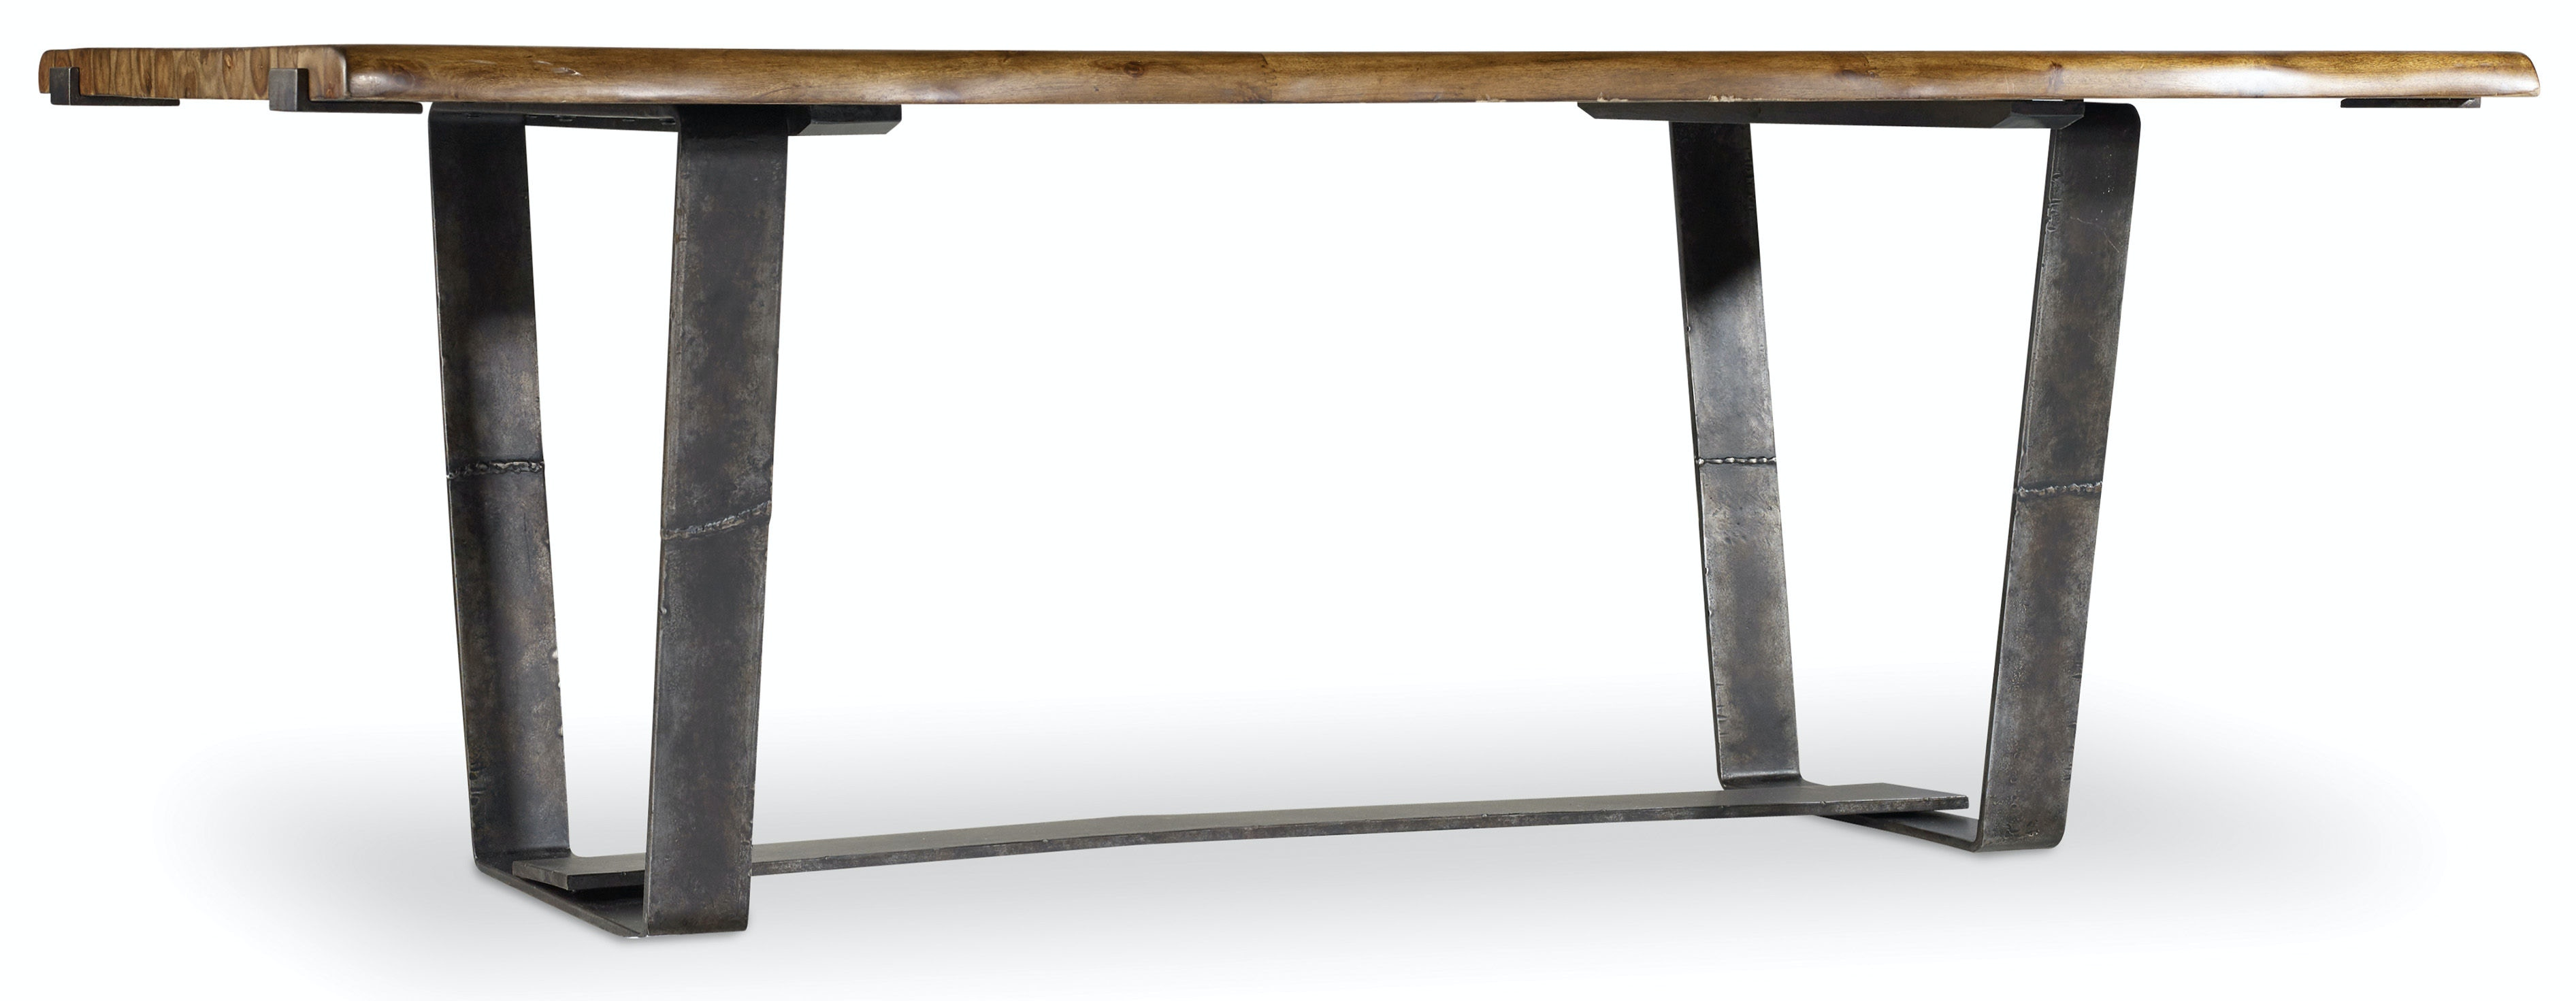 Hooker Furniture Dining Room Live Edge Dining Table 5590-75200